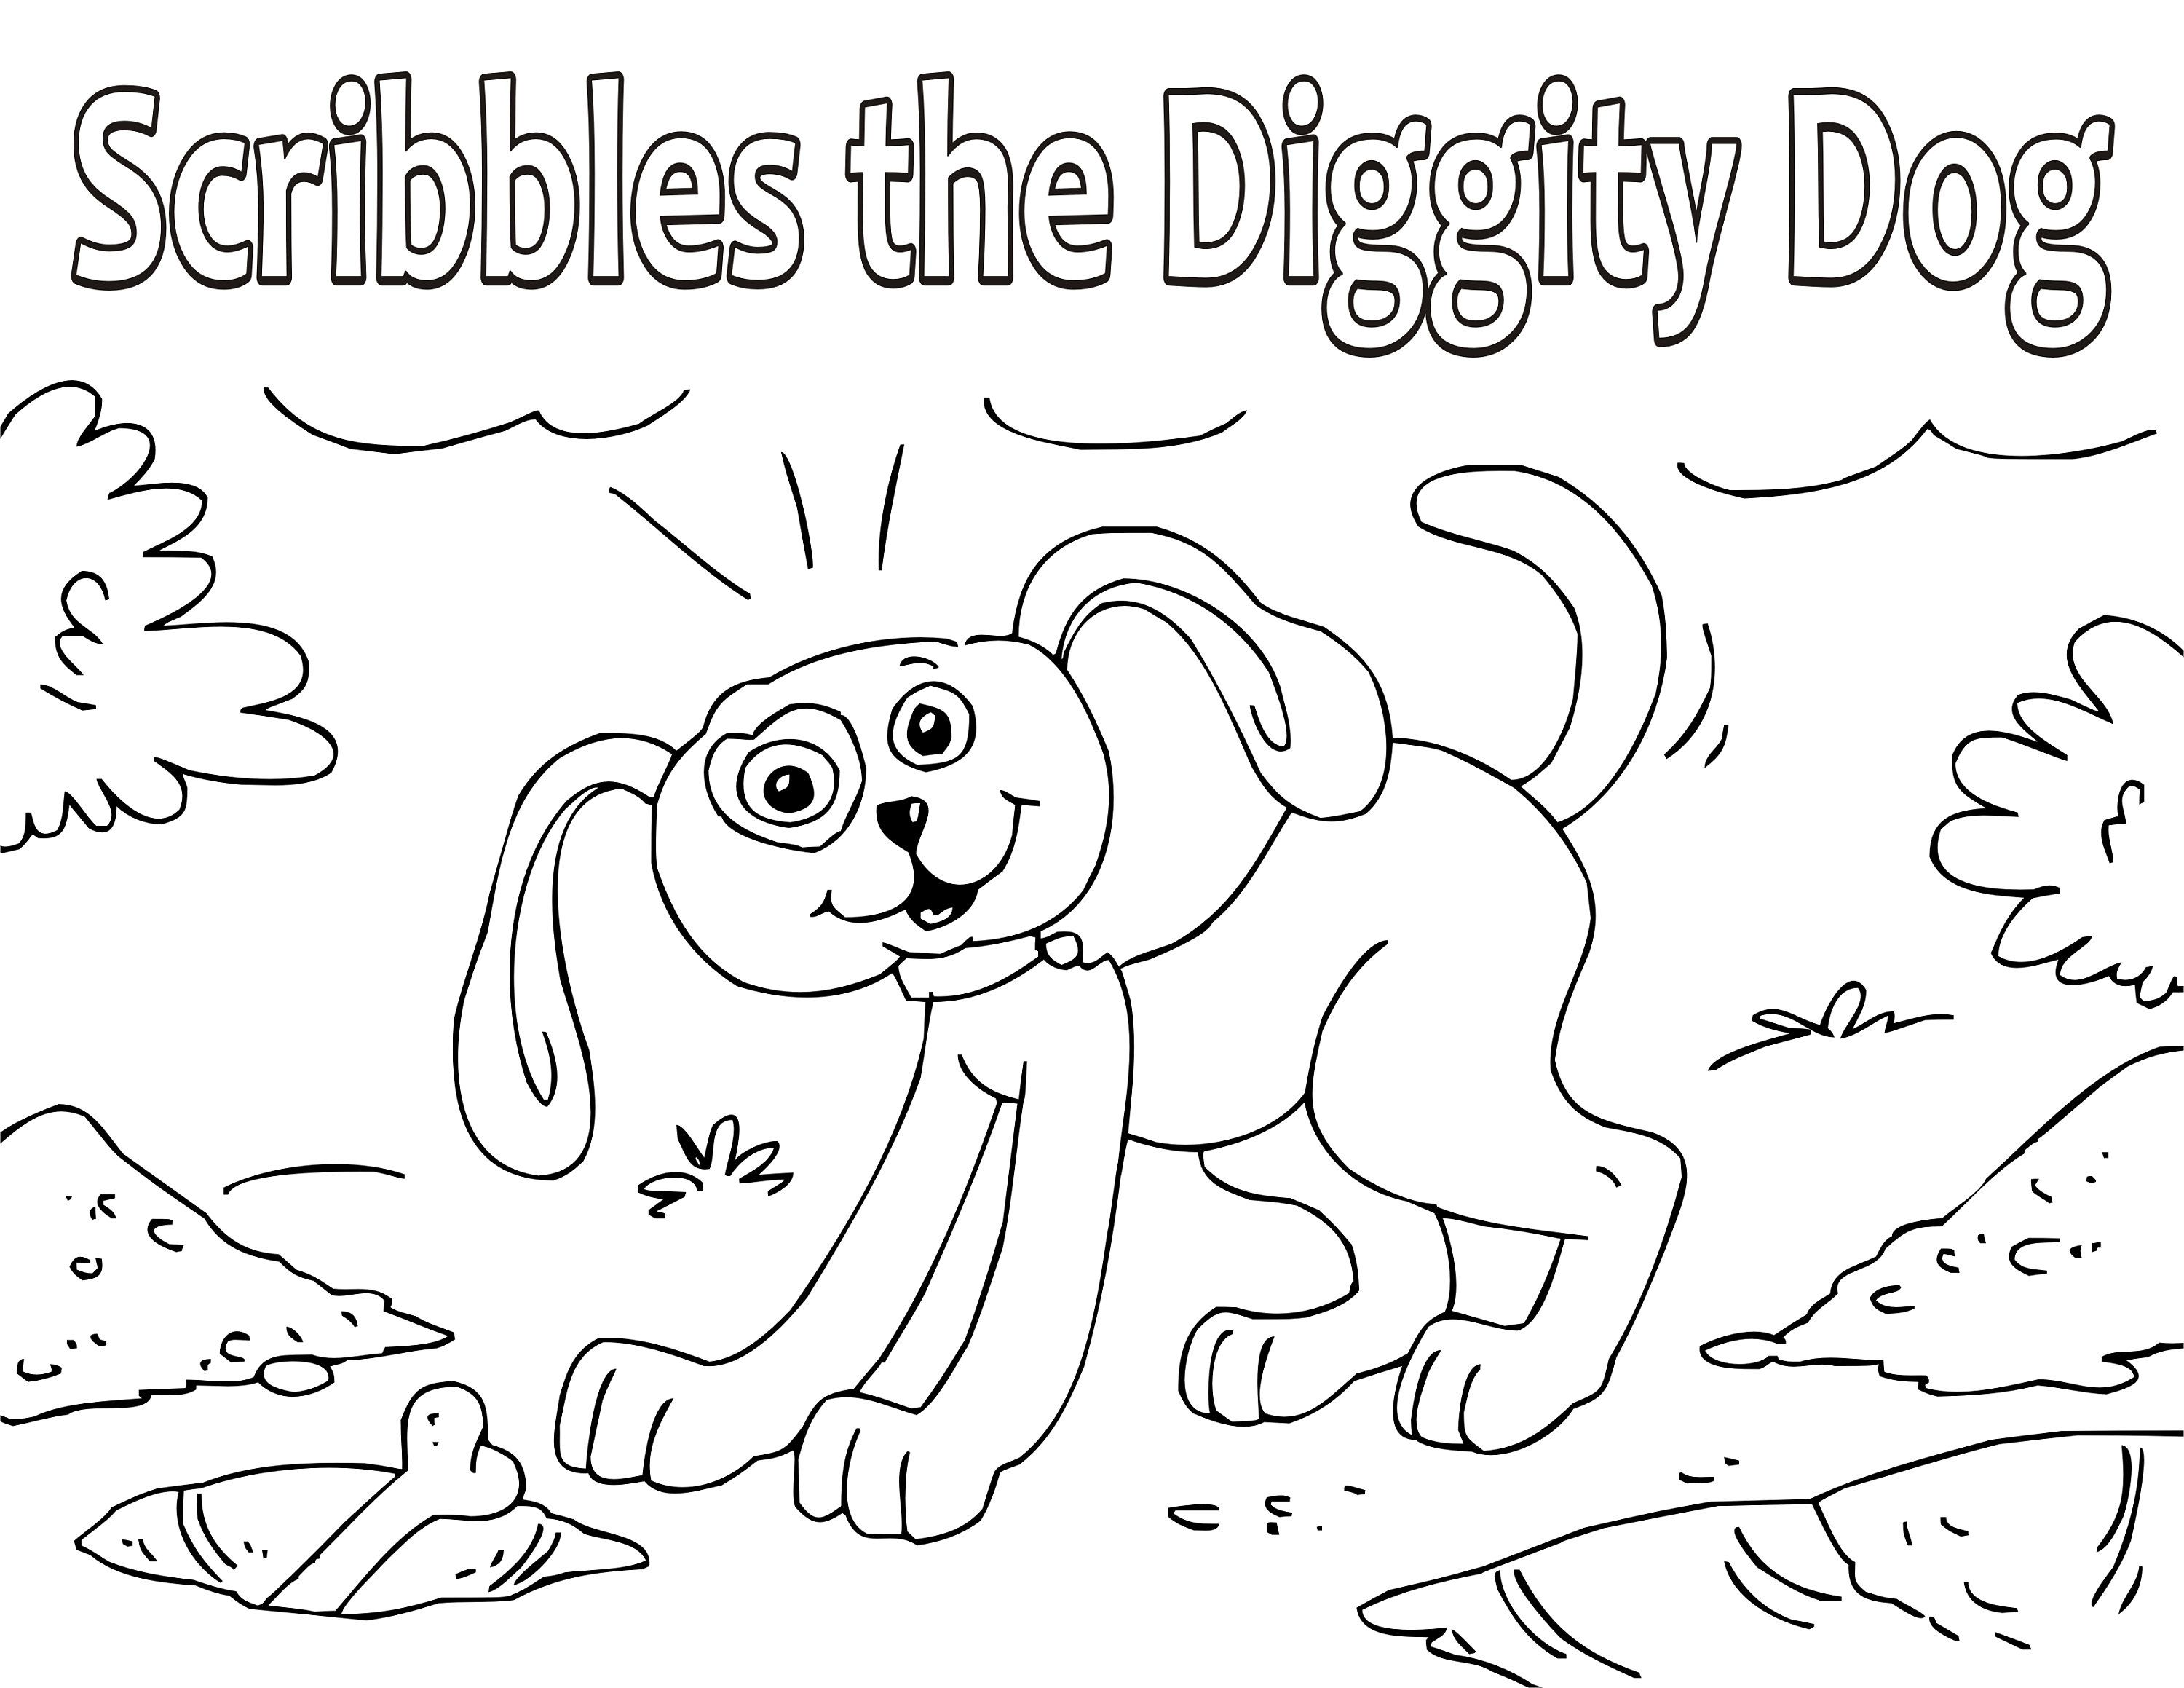 Coloring Book With Story For Kids Scribbles The Diggity Dog Bedtime Story Coloring Pages Colorin Coloring Books Coloring Pages Printable Coloring Book